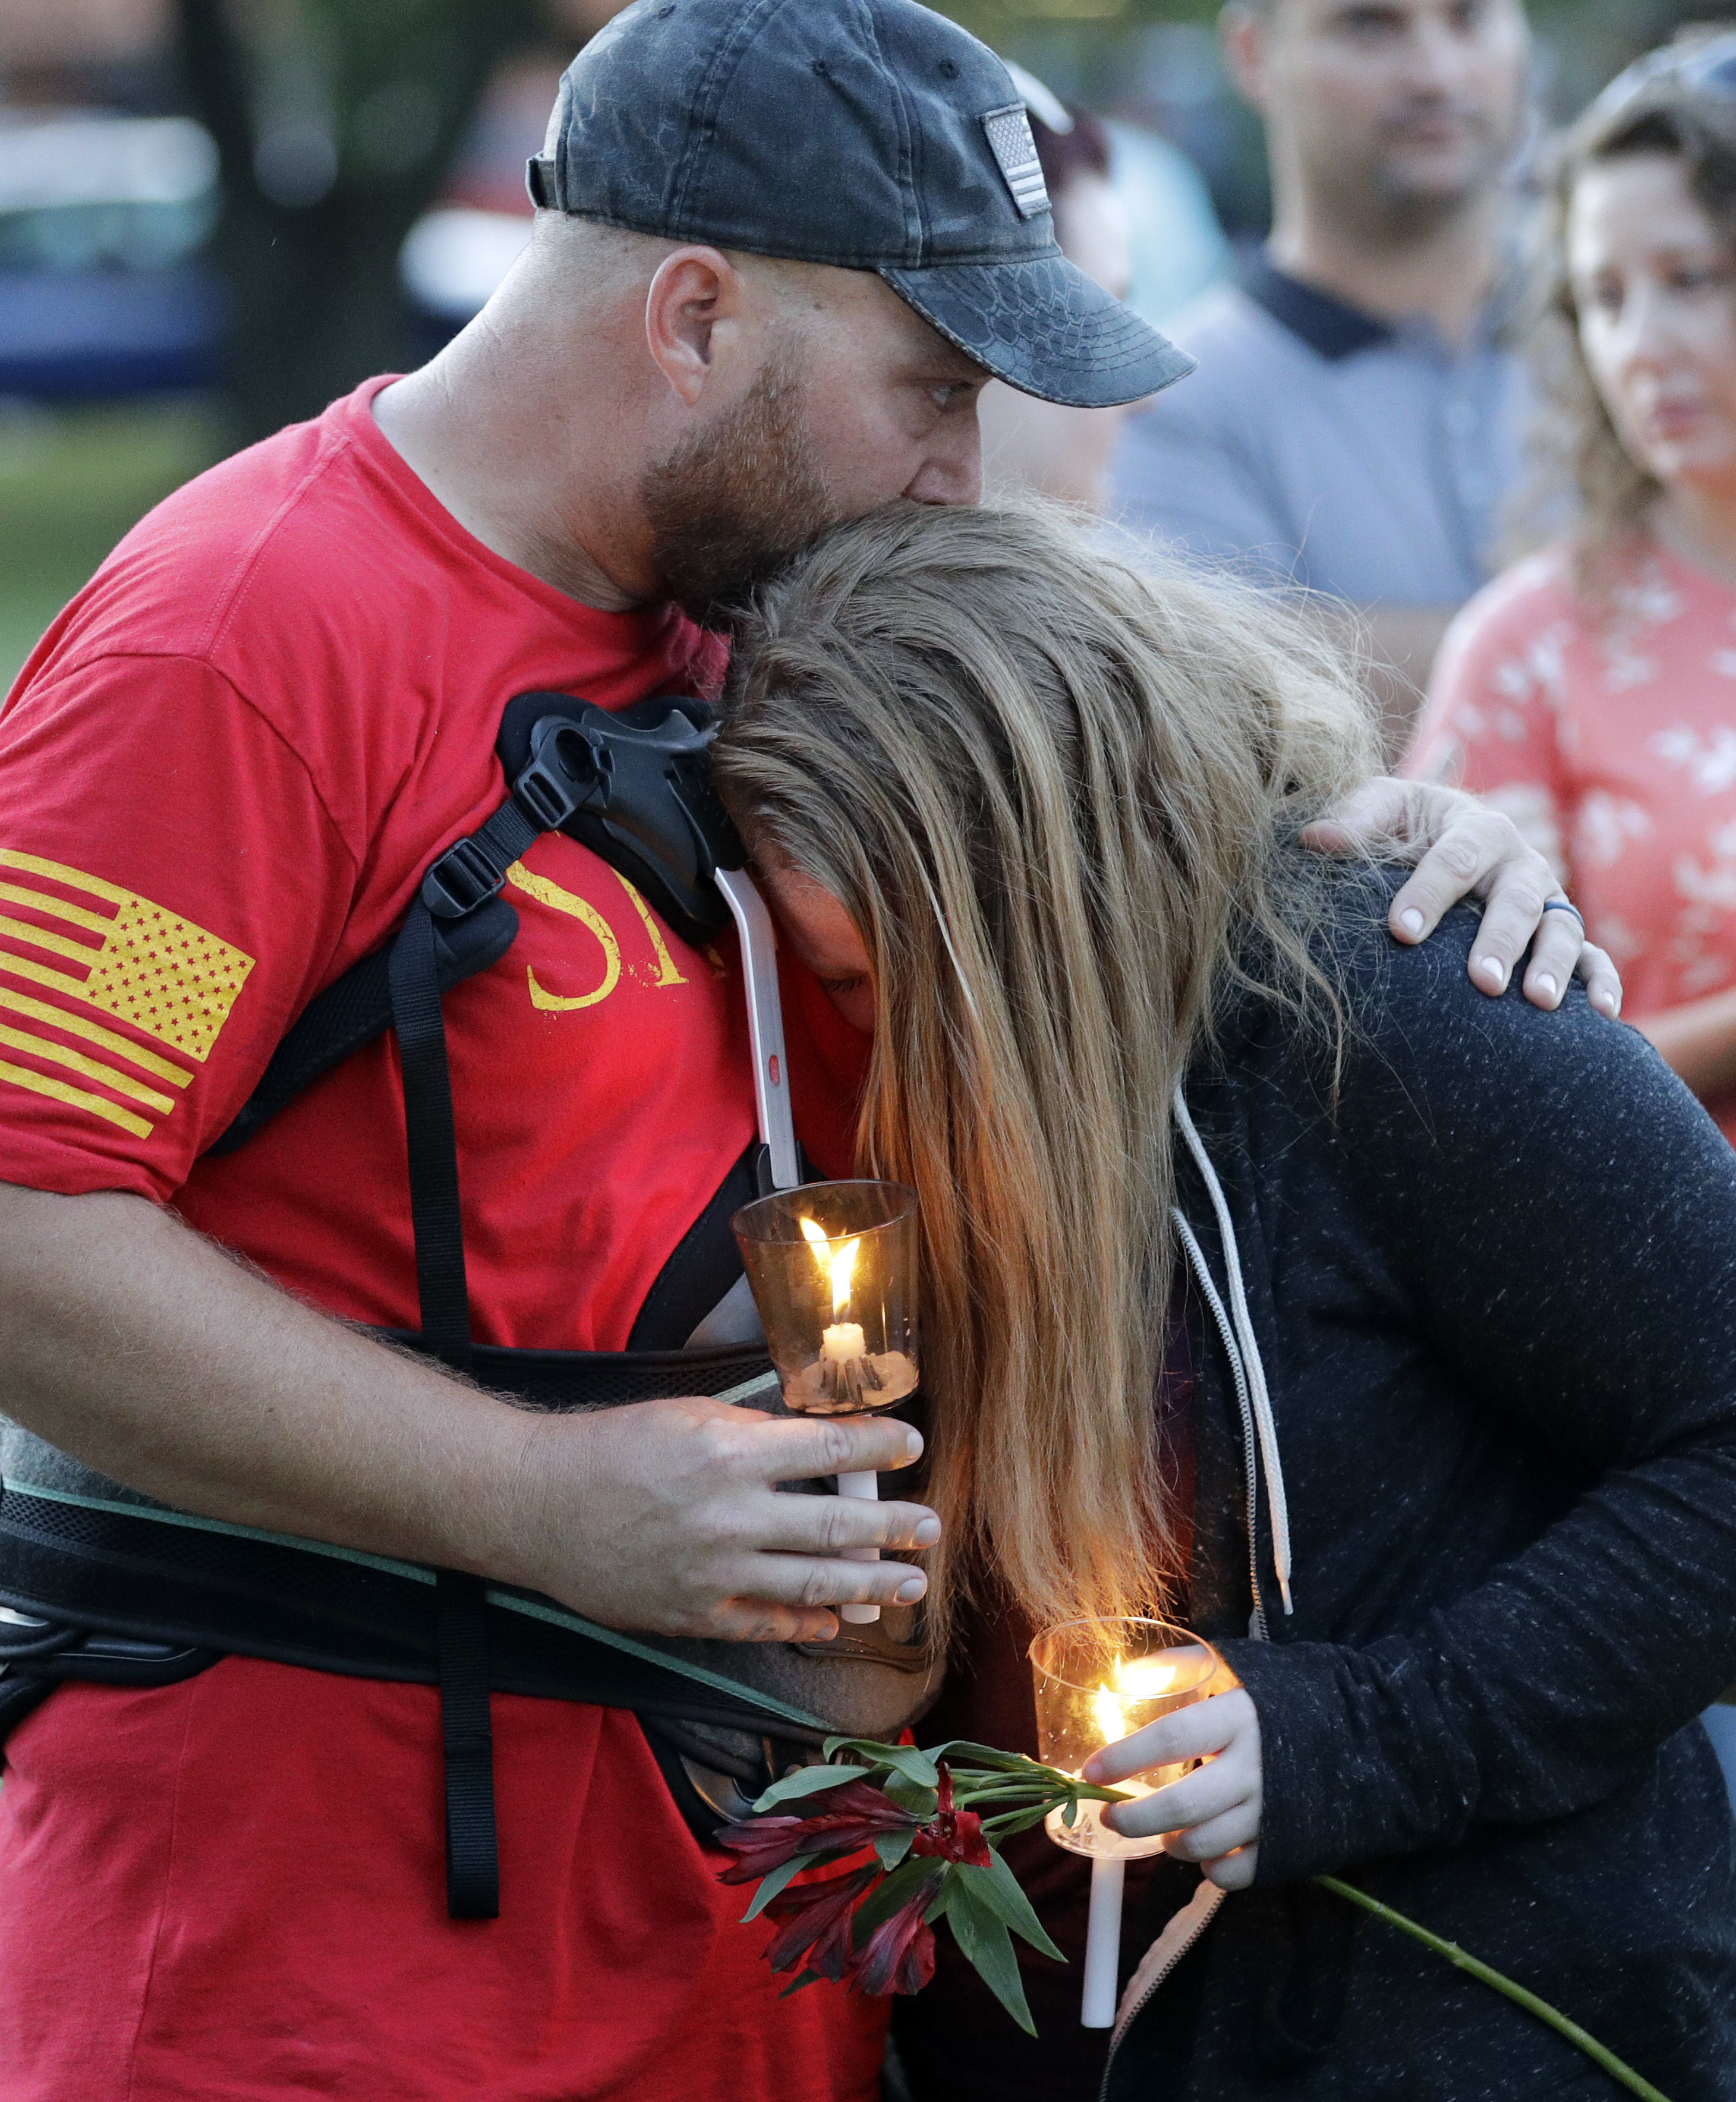 Santa Fe Comforted In Grief During Vigil For Shooting